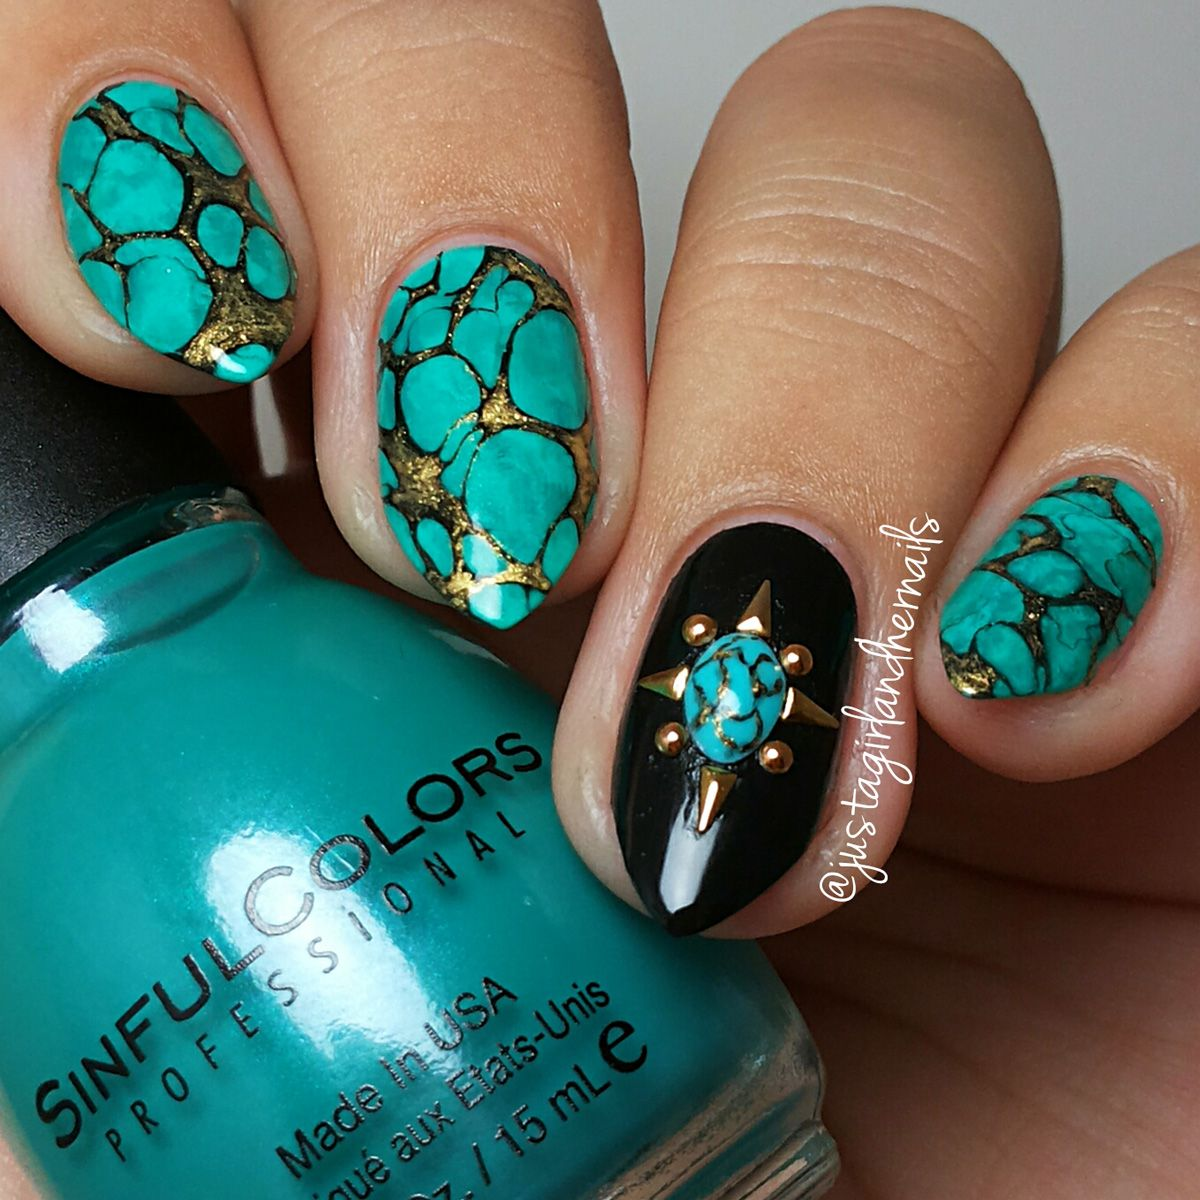 32 Turquoise Nails Summer Nail Art | Art tutorials, Turquoise and ...